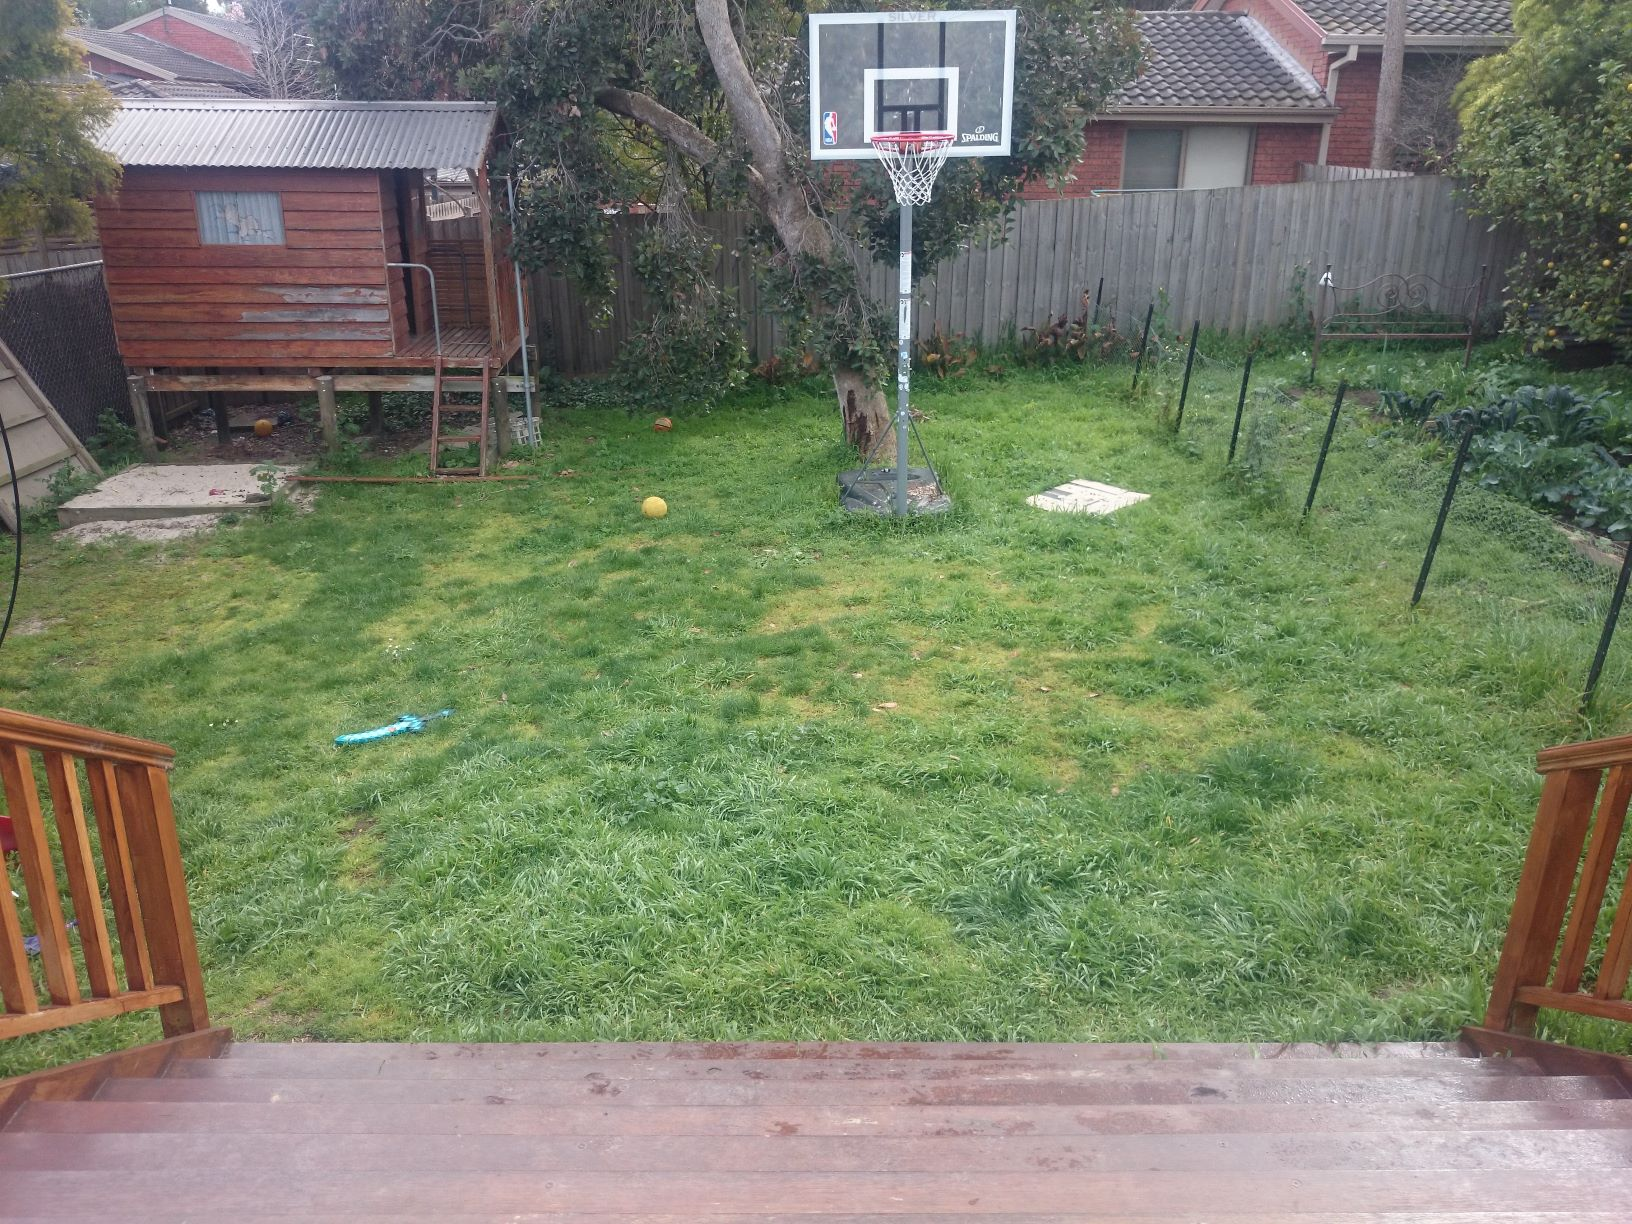 A garden with lots of potential, lawn needs a mow, basket ball hop, cubby house